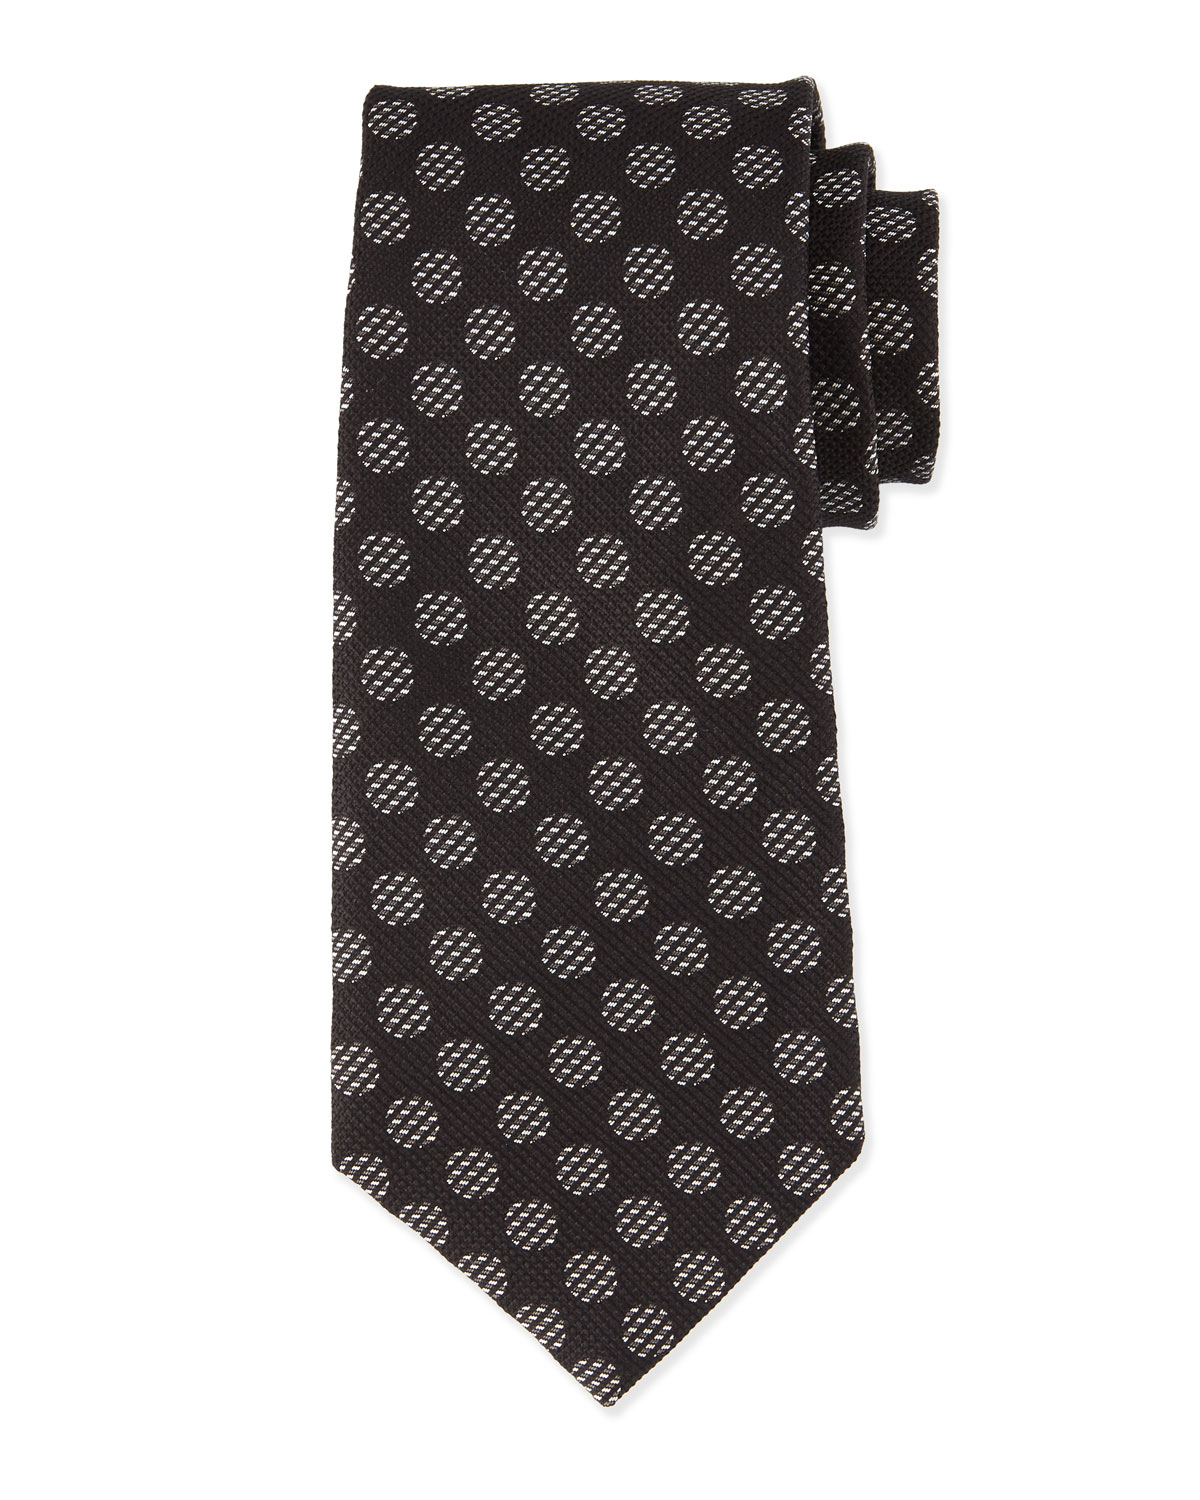 tom ford large dot print silk tie white black neiman marcus. Black Bedroom Furniture Sets. Home Design Ideas